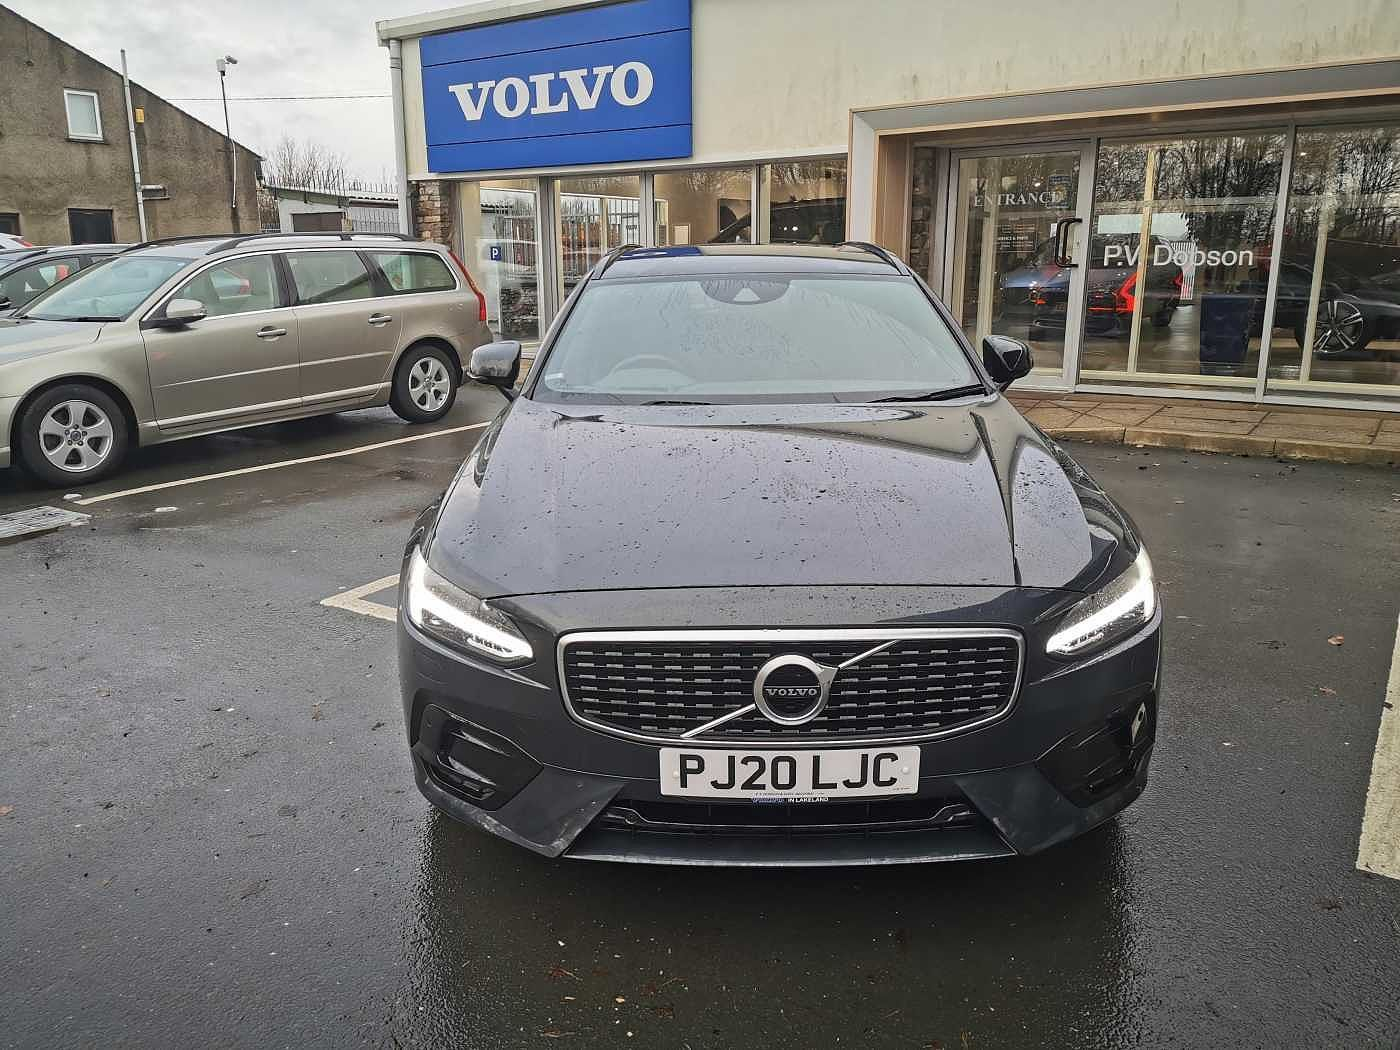 Volvo V90 2.0TD (190bhp) D4 R-Design Plus Estate